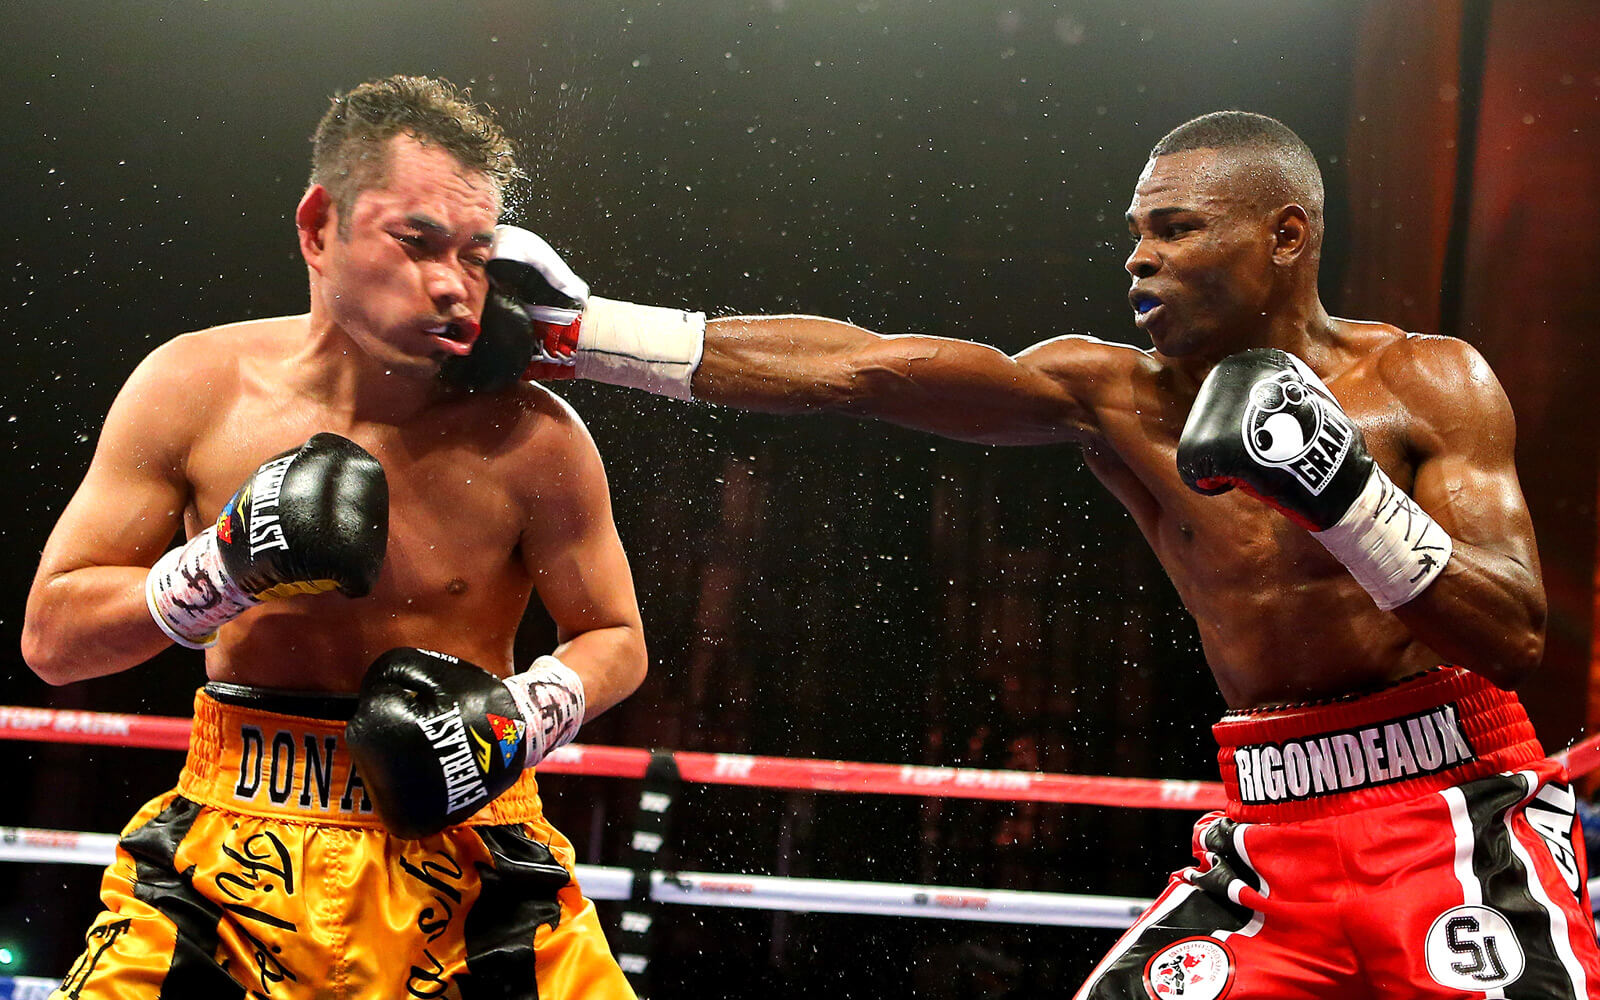 Rigo p4p article.jpg